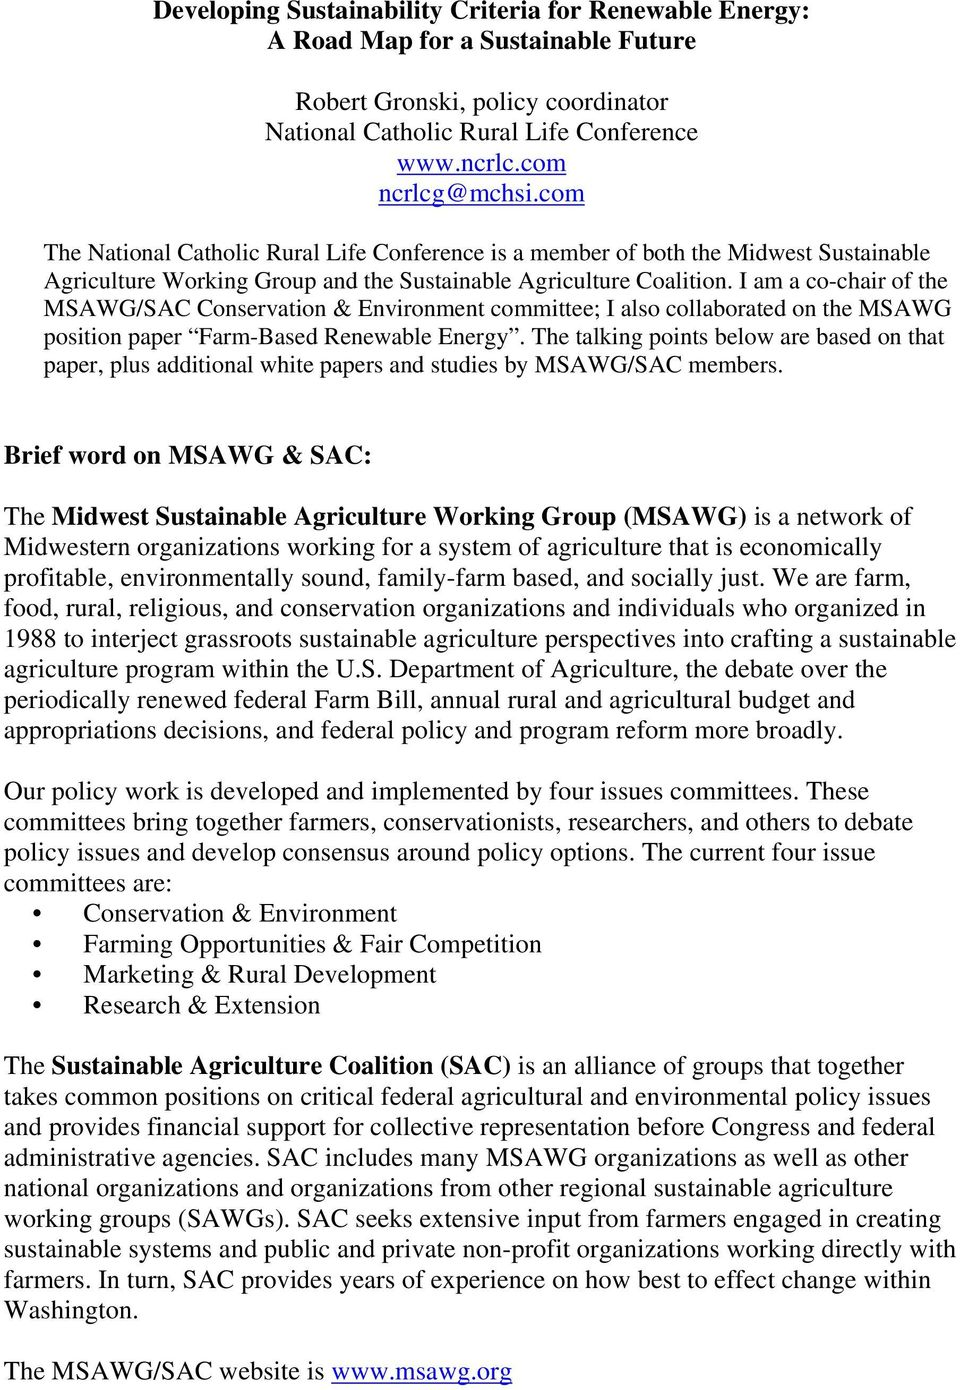 I am a co-chair of the MSAWG/SAC Conservation & Environment committee; I also collaborated on the MSAWG position paper Farm-Based Renewable Energy.